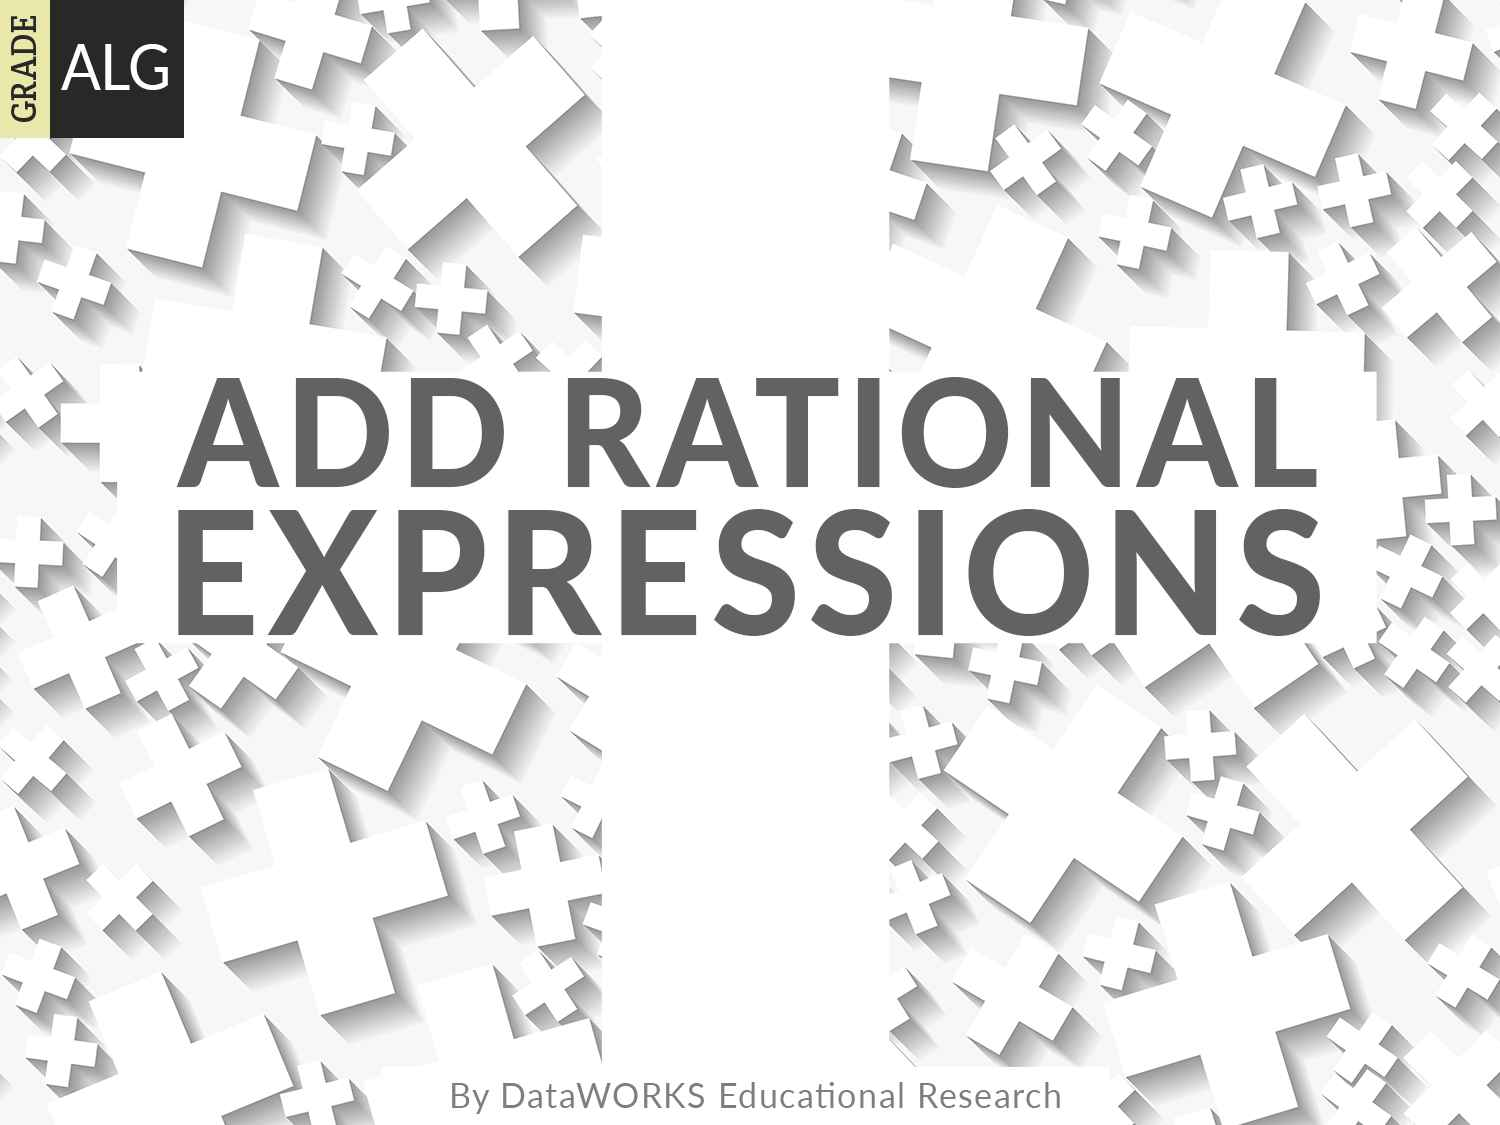 Add Rational Expressions